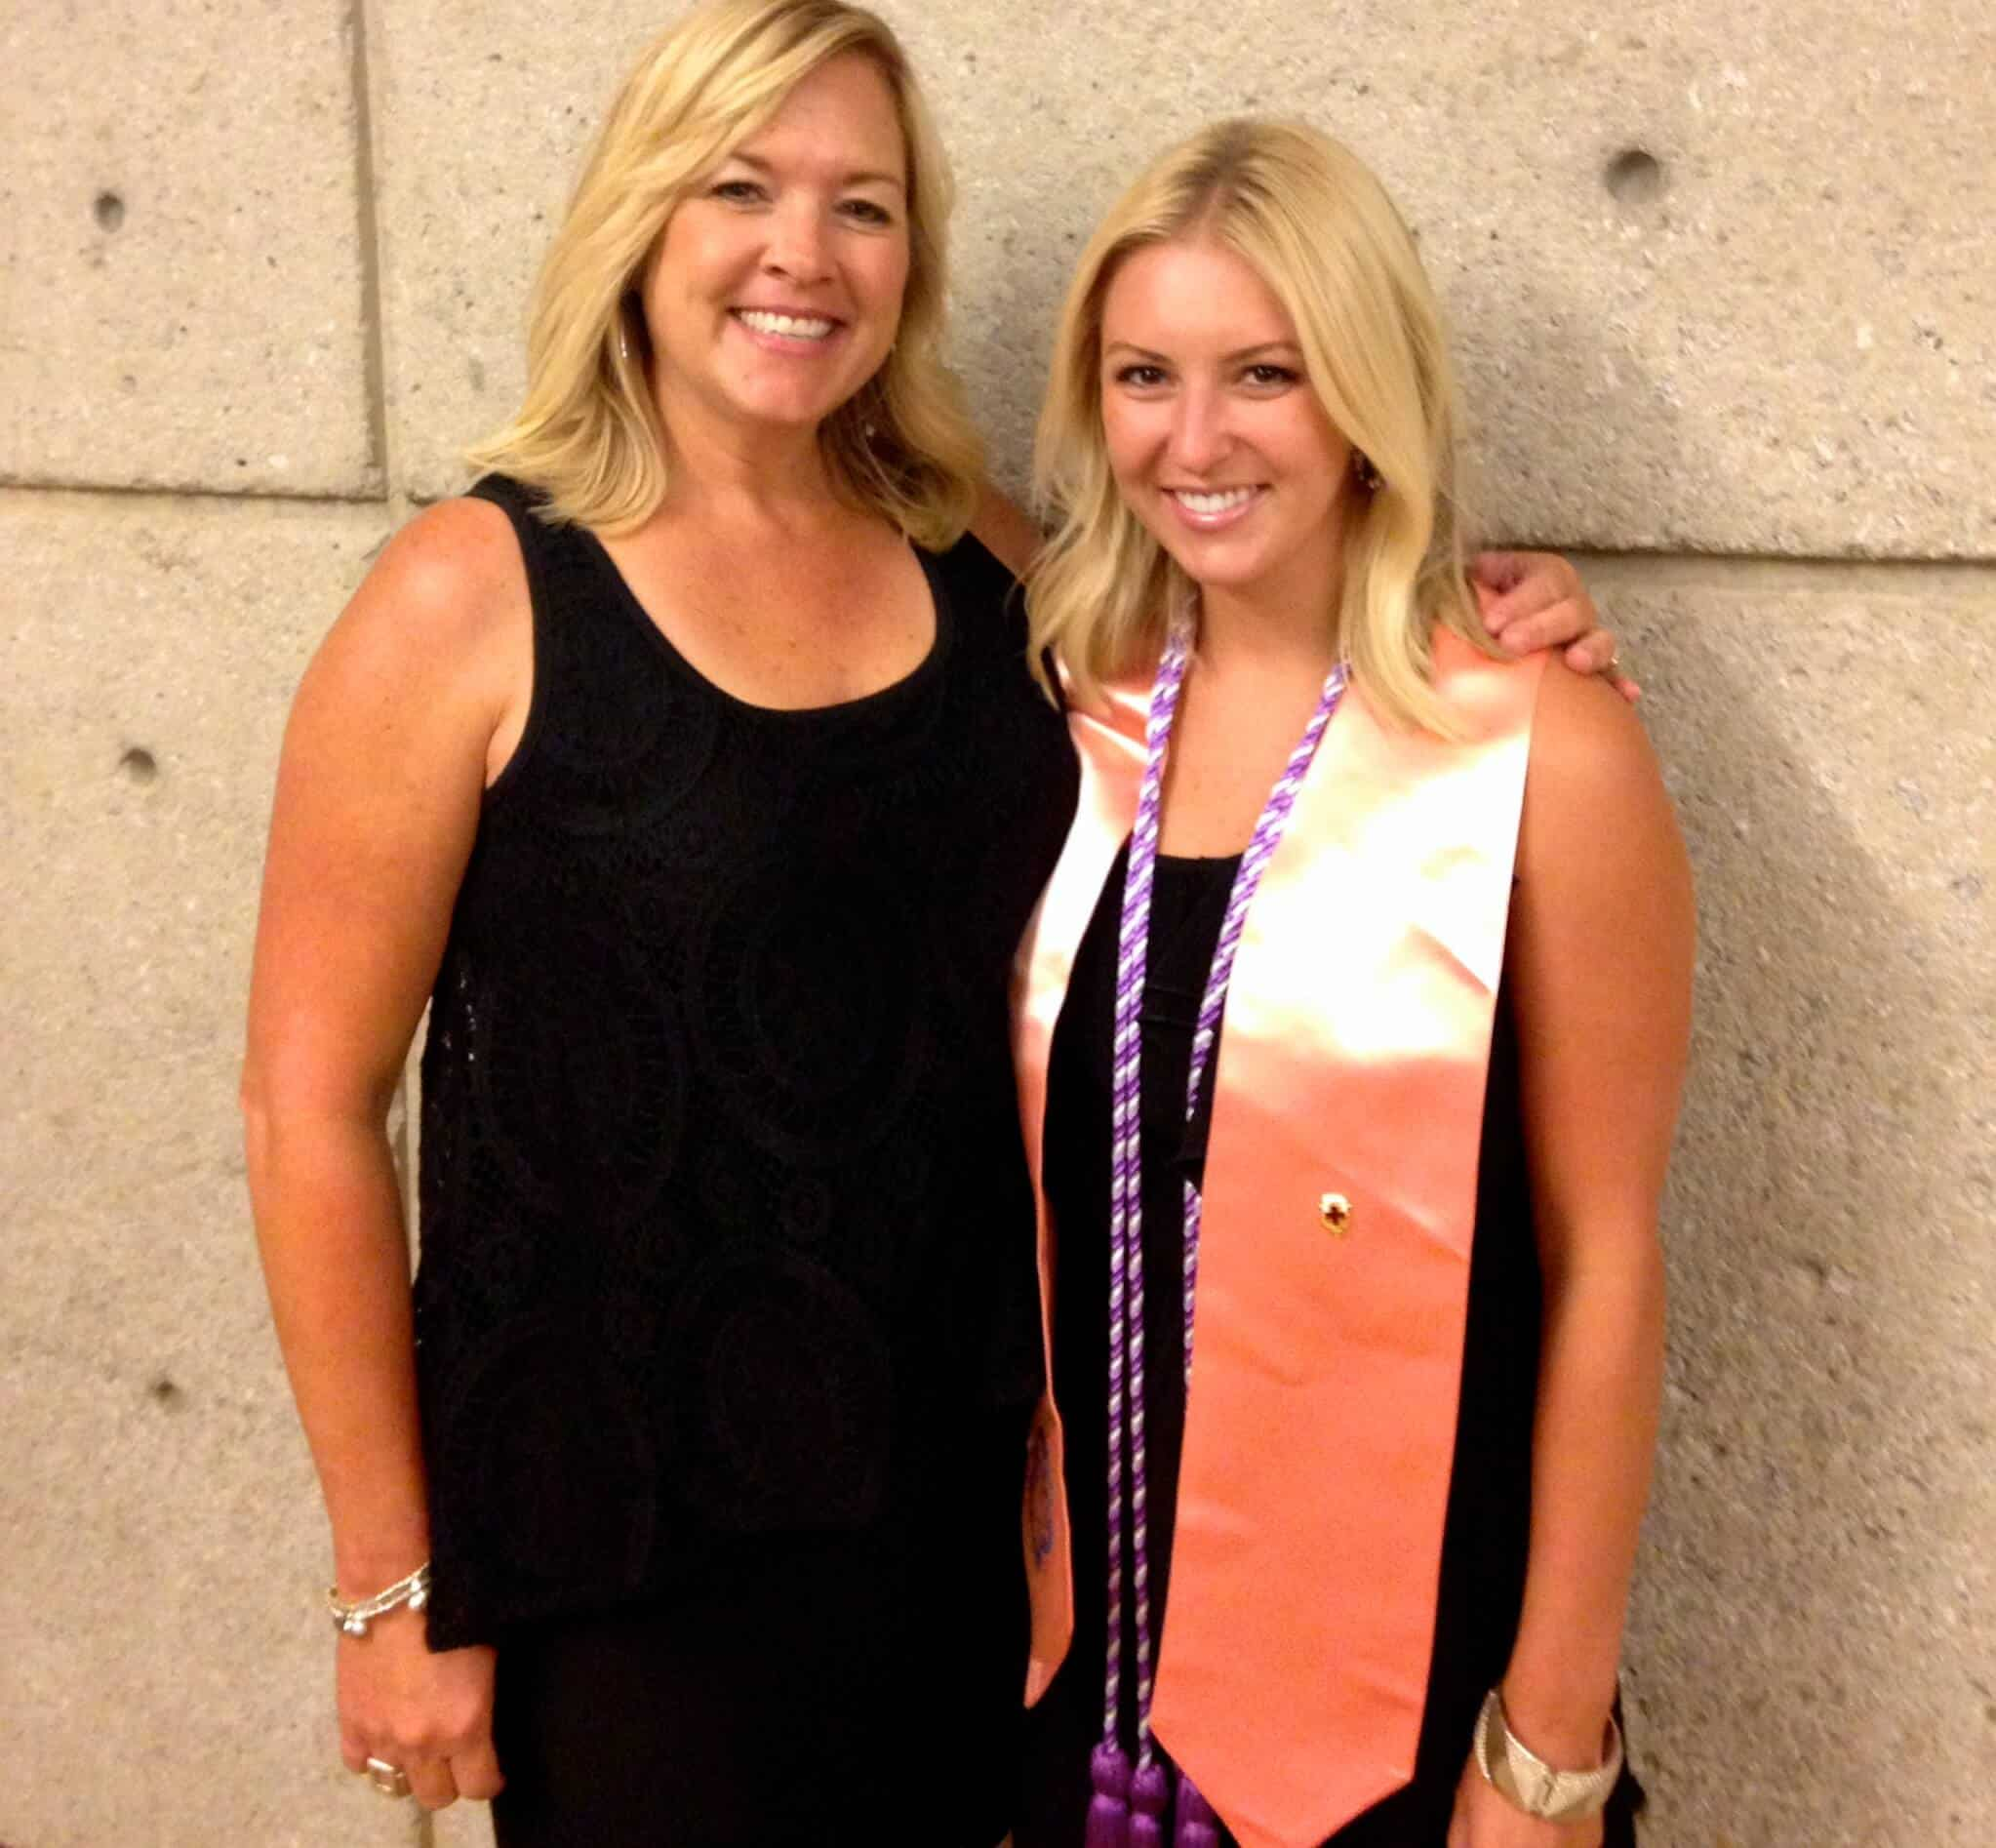 Graduation from Emory nursing school